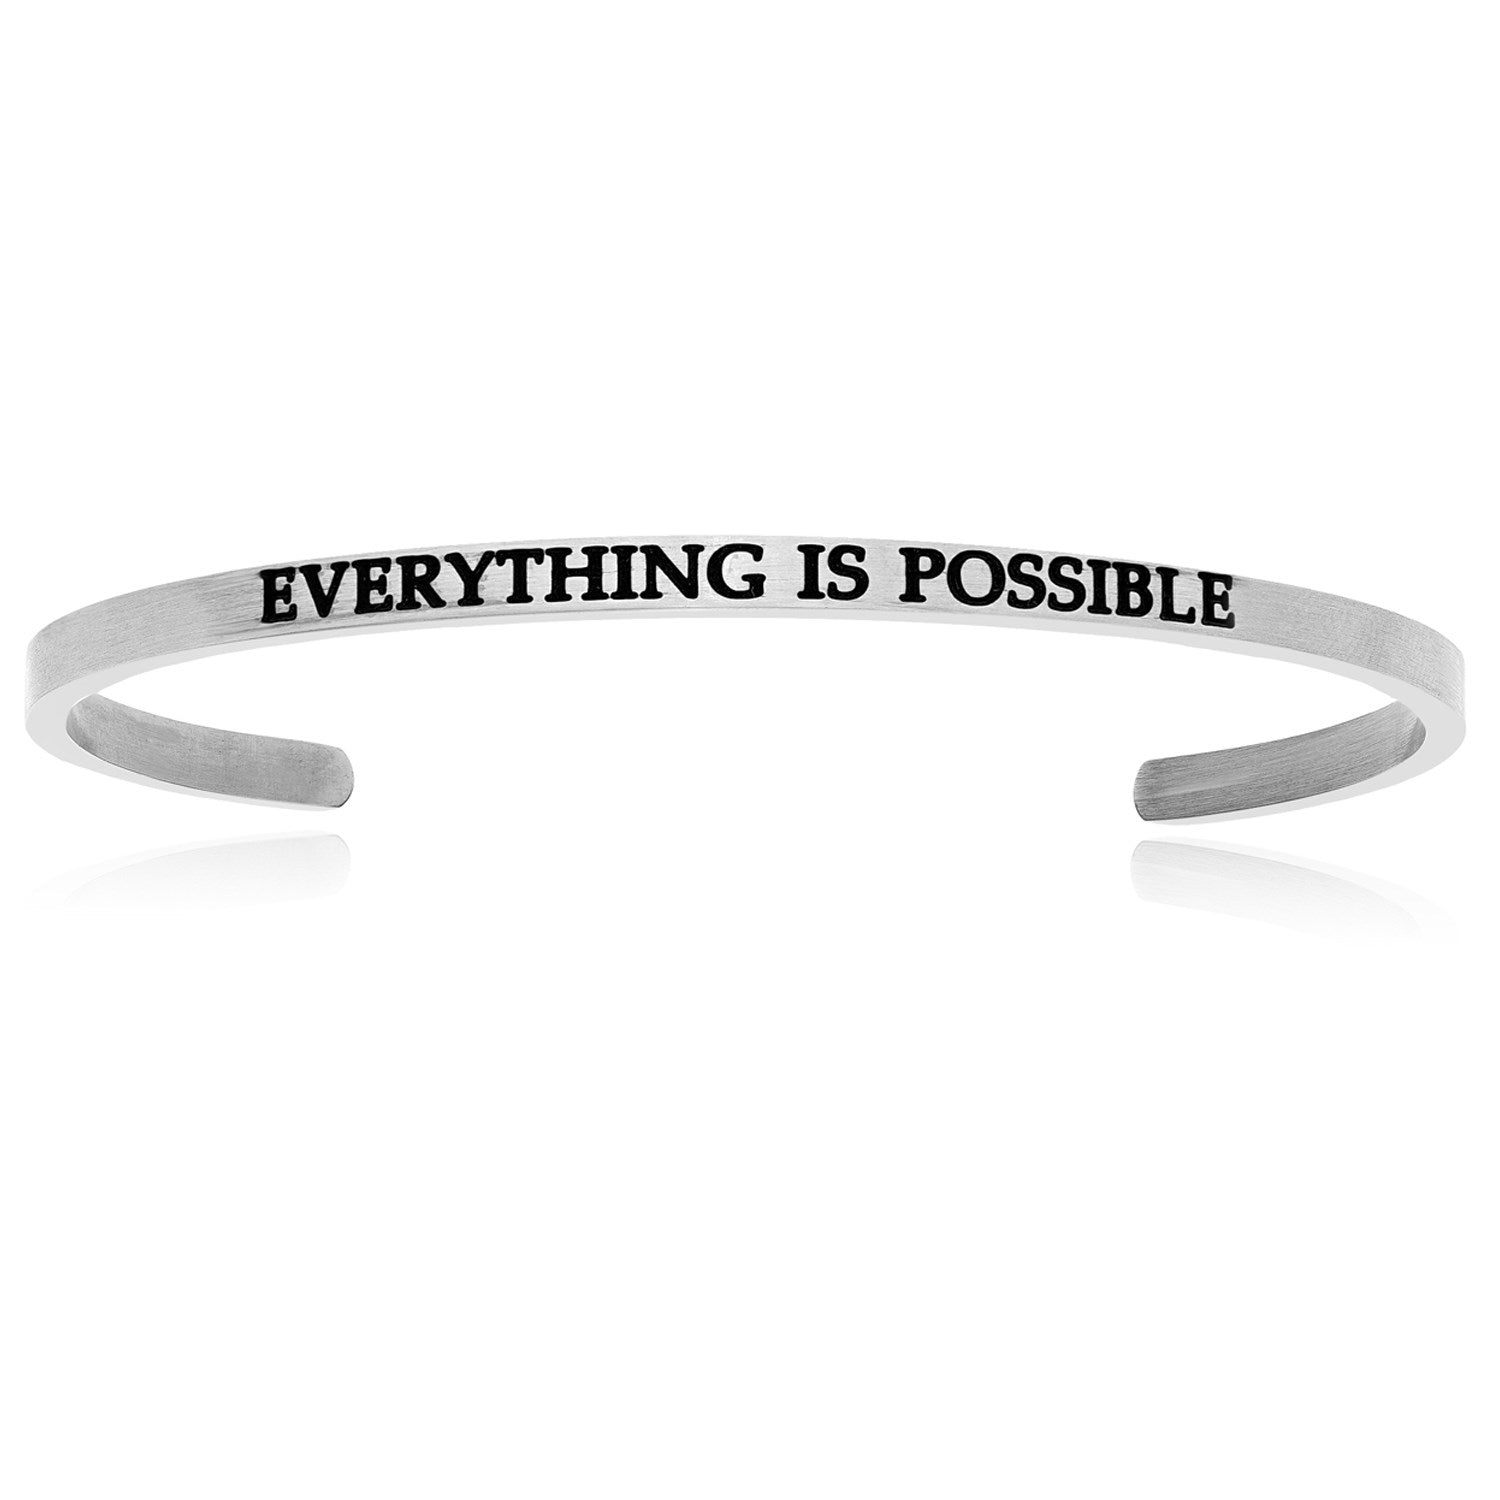 Stainless Steel Everything Is Possible Cuff Bracelet